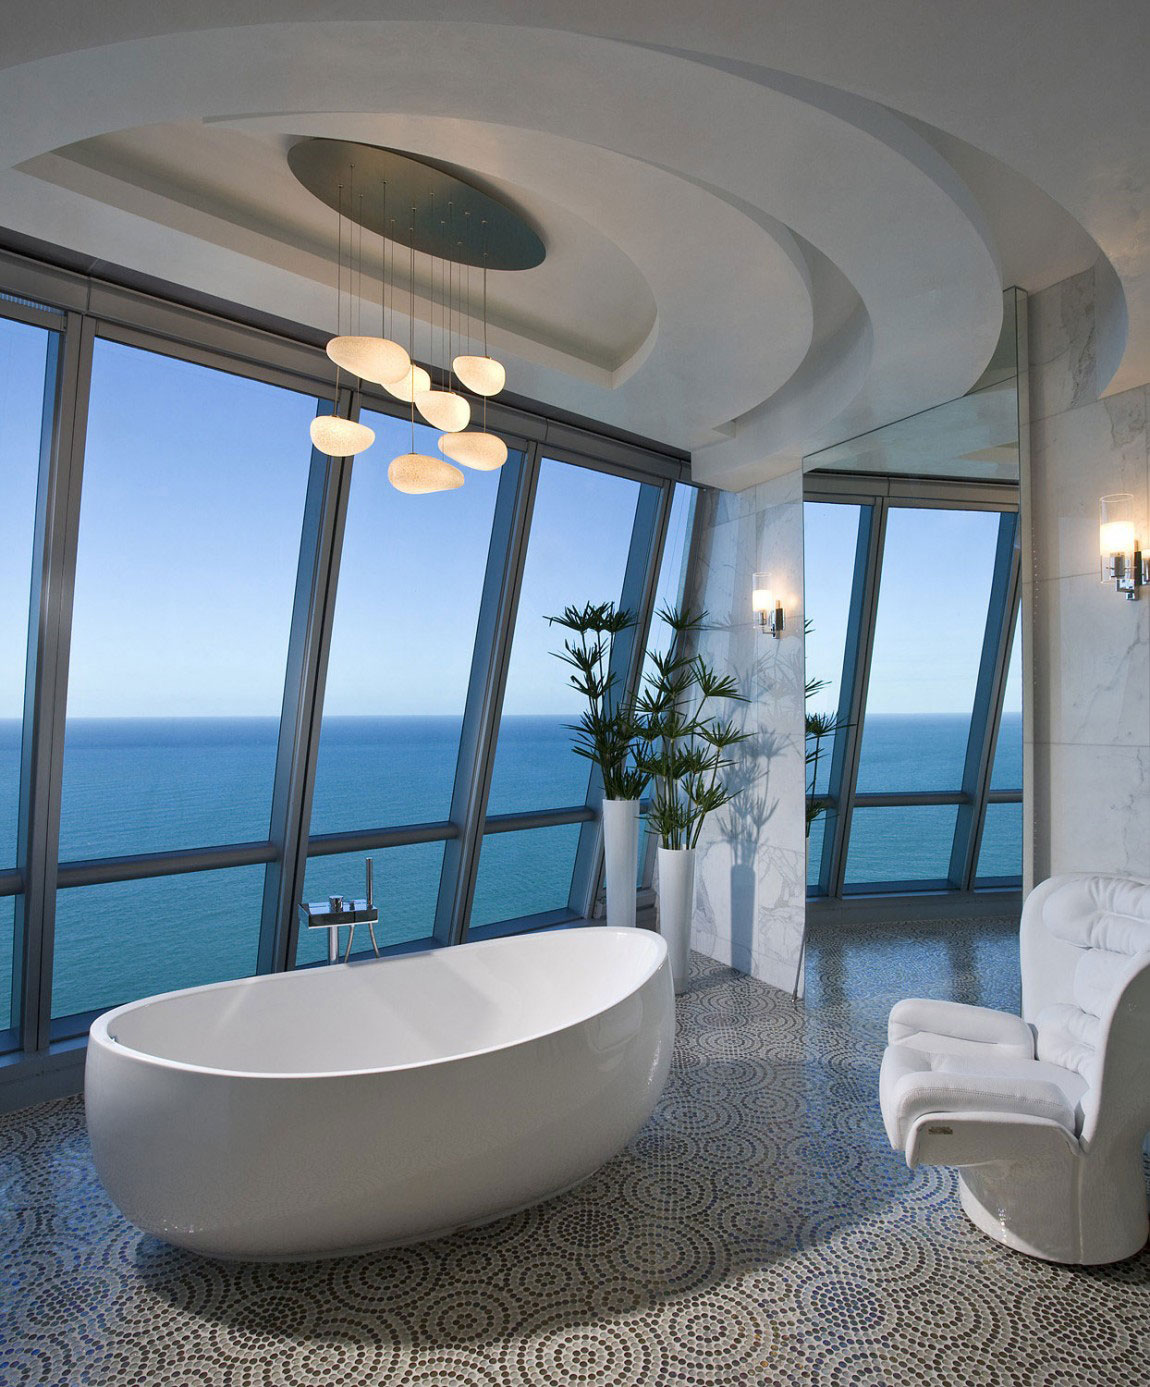 Elegant-ocean-penthouse-with-lots-hanging-lights-18 Elegant ocean-penthouse med massor av hängande lampor